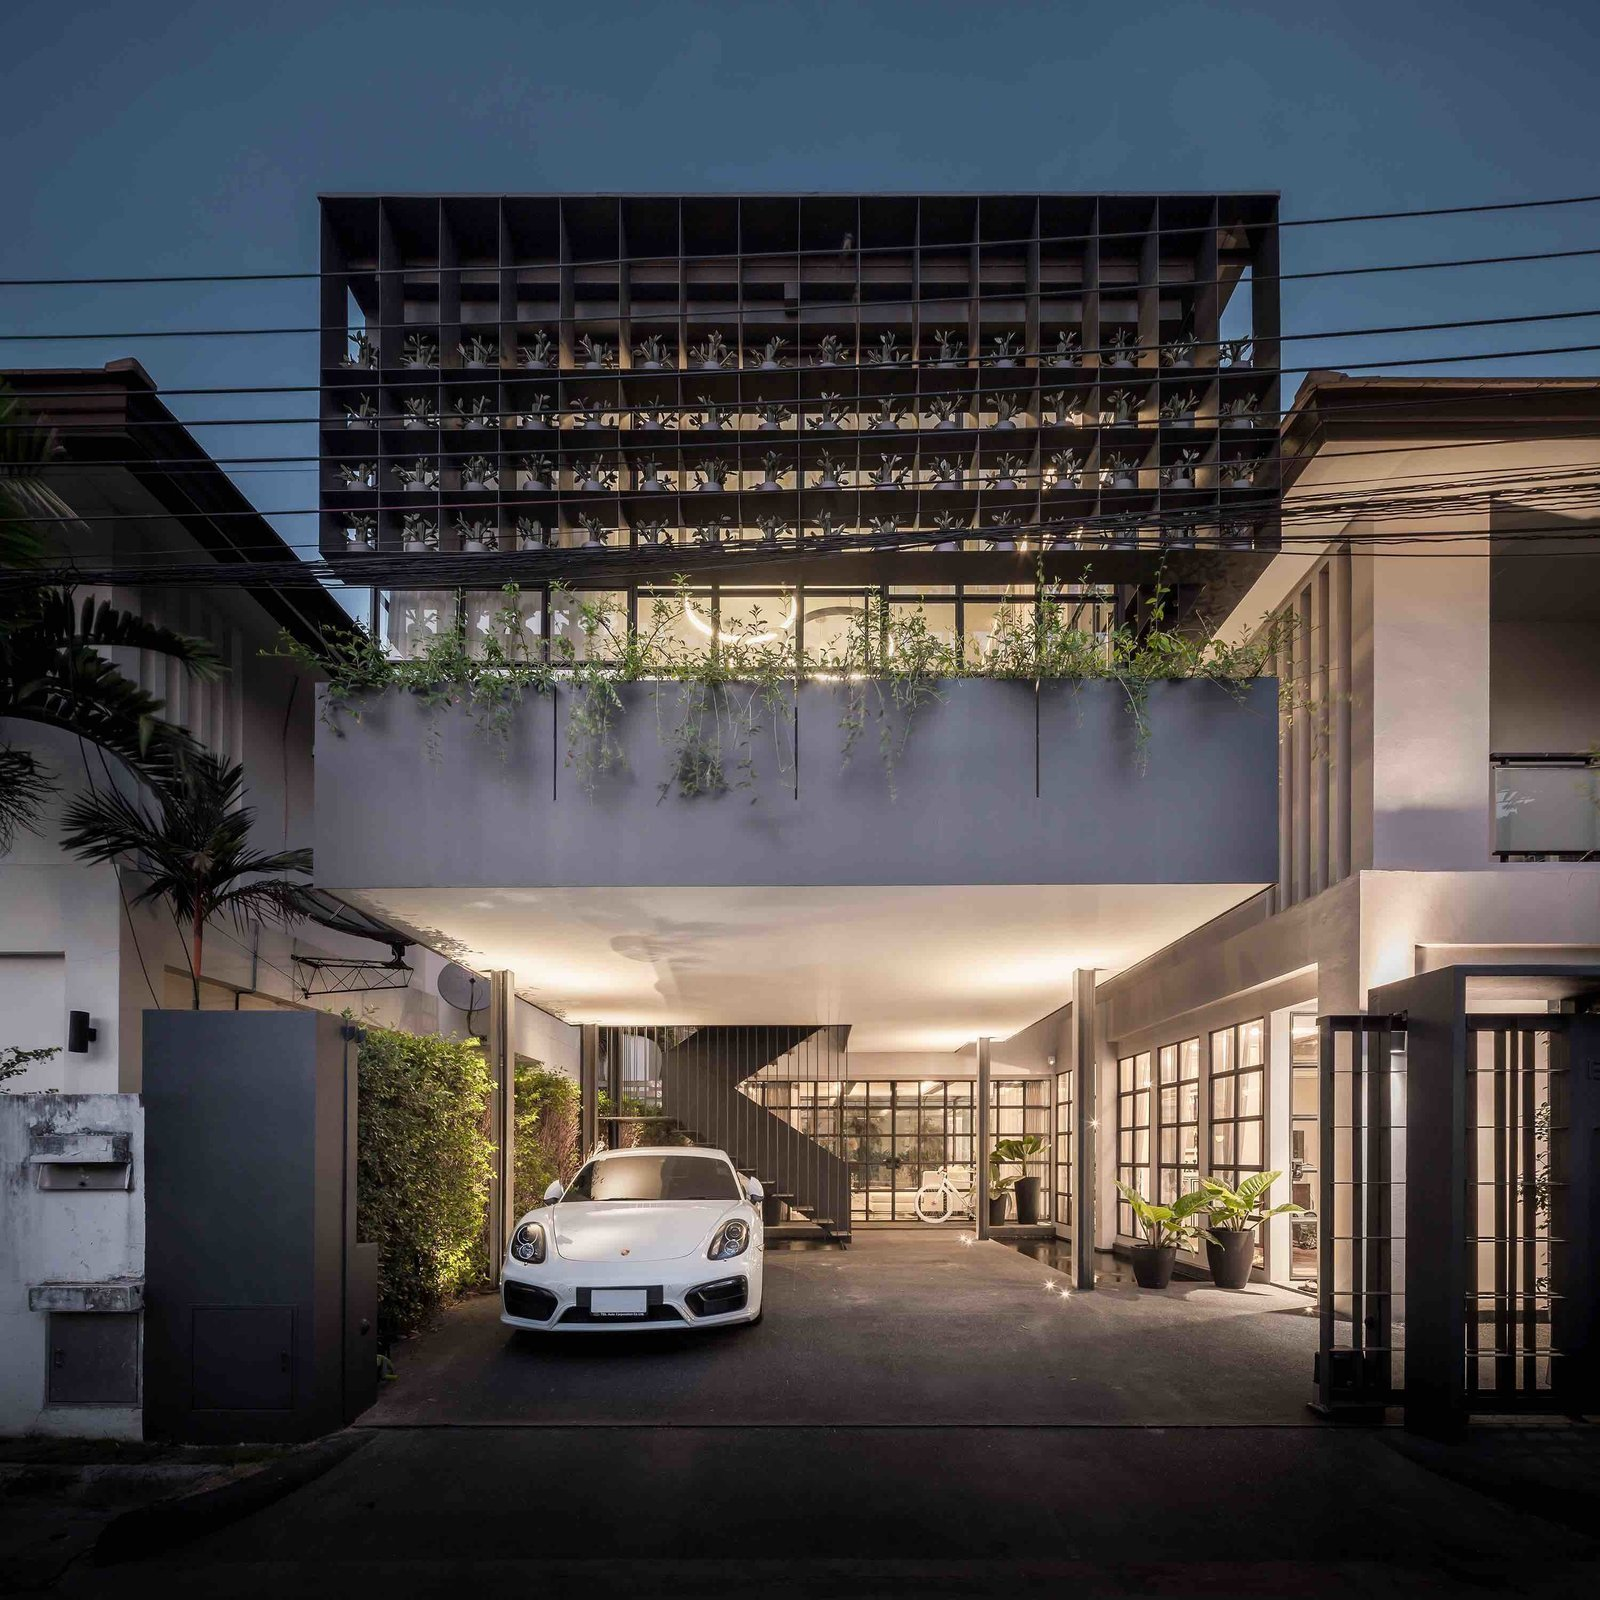 102 potted olive plants sit in the nooks of this reinforced gridded-steel framework that wraps around the front of this Bangkok home designed by Thai architecture firm Anonym Studio.